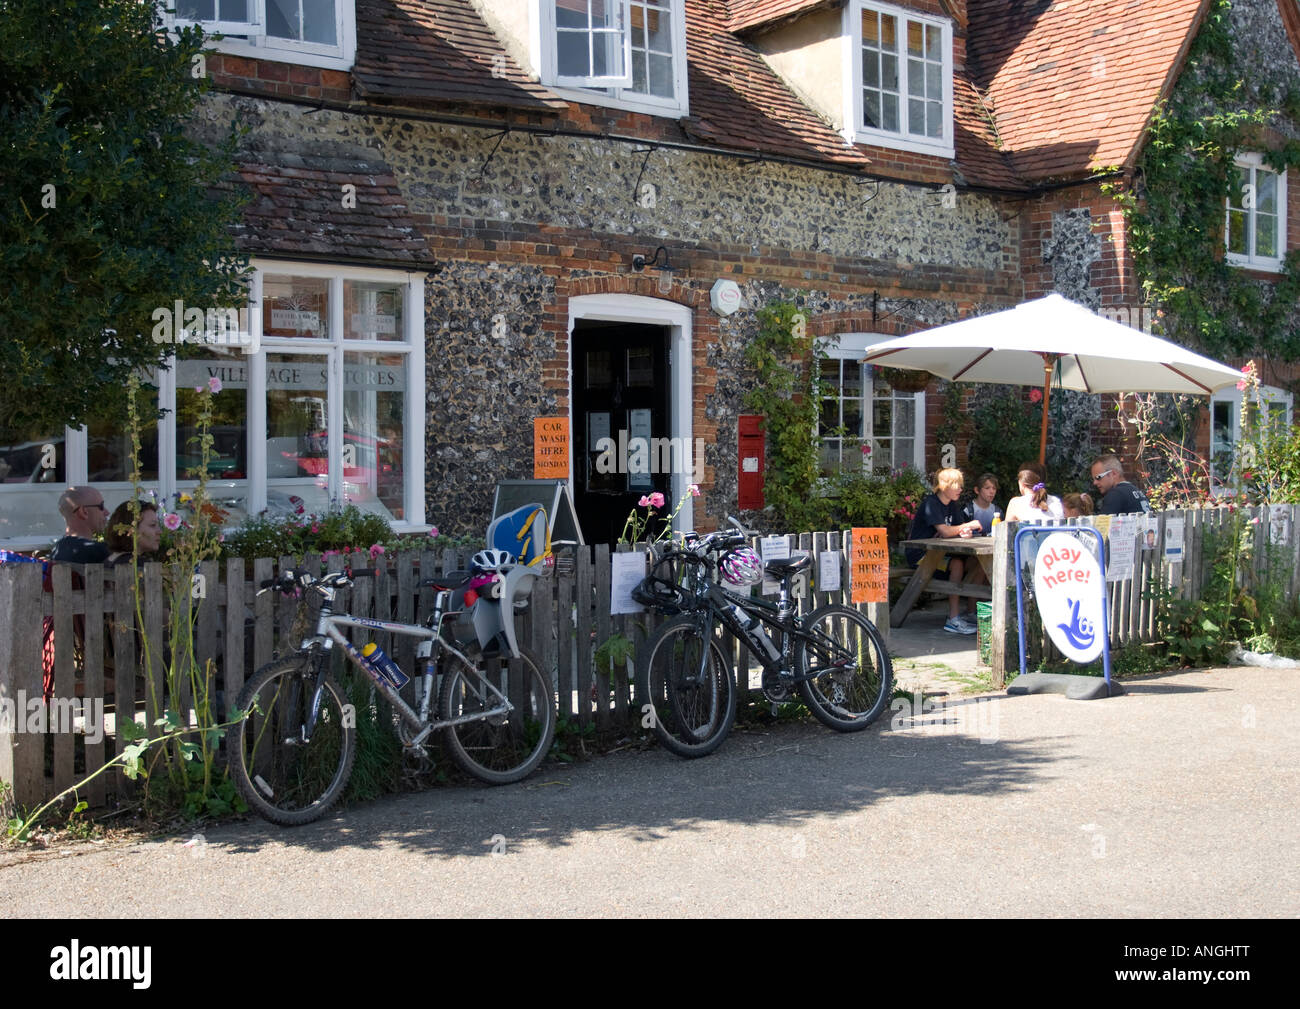 Village Shop - Hambleden - Thames Valley - Buckinghamshire - Stock Image